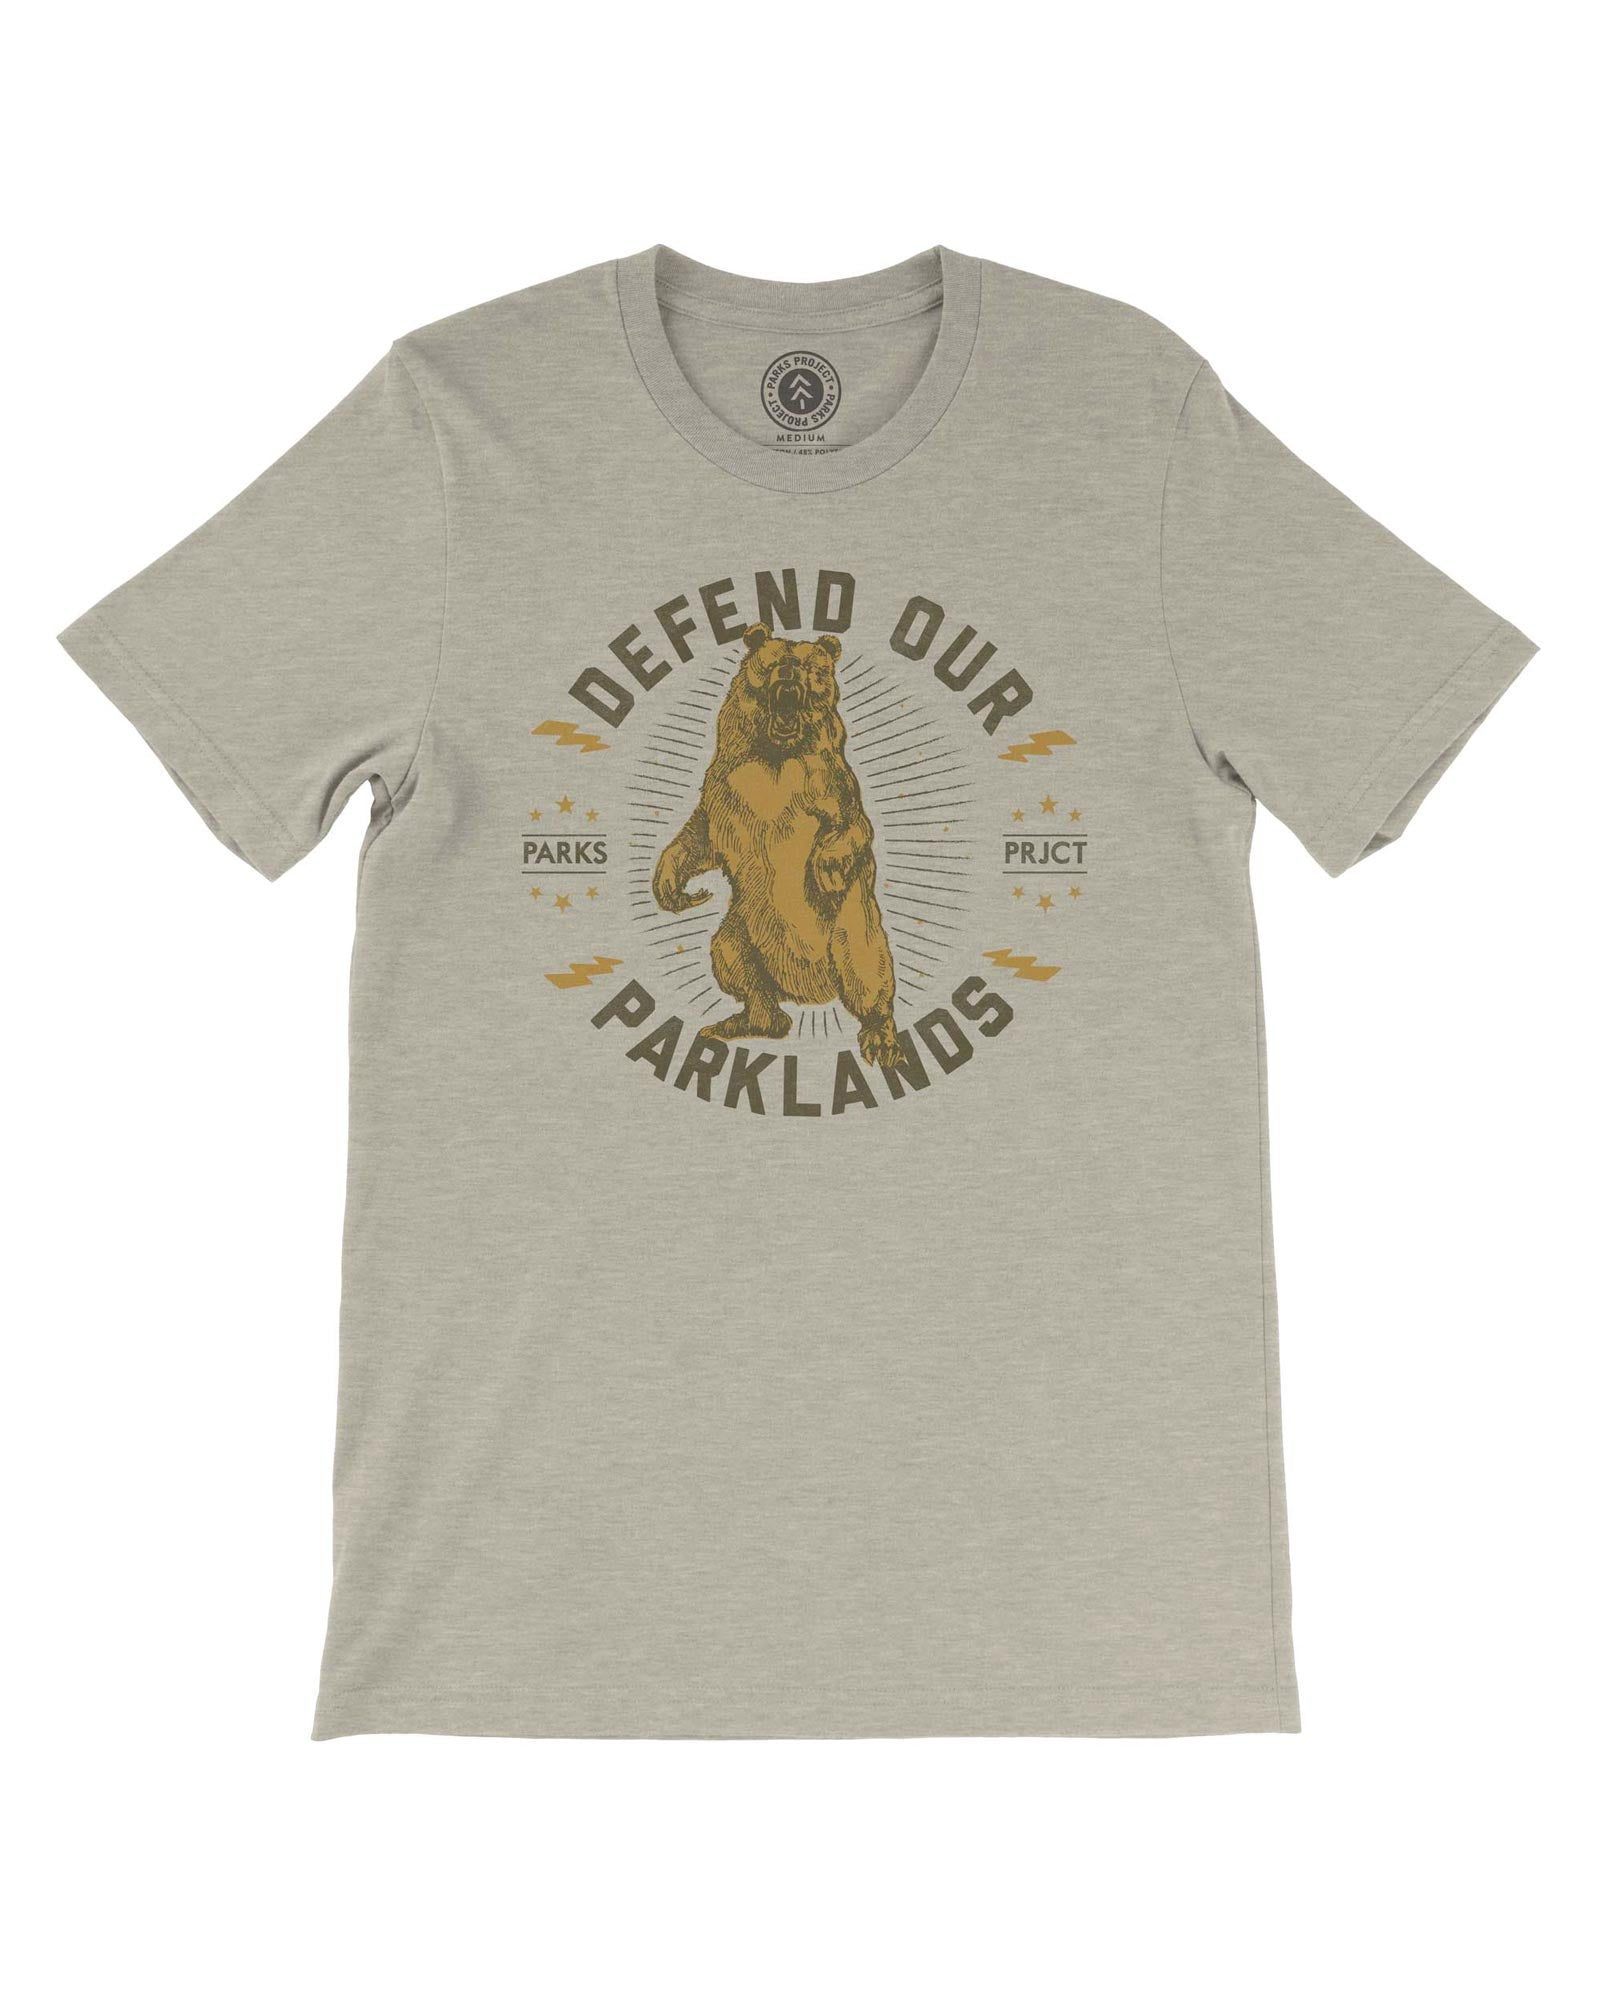 Defend our Parklands Tee | Parks Project | Alt National Park Shirt